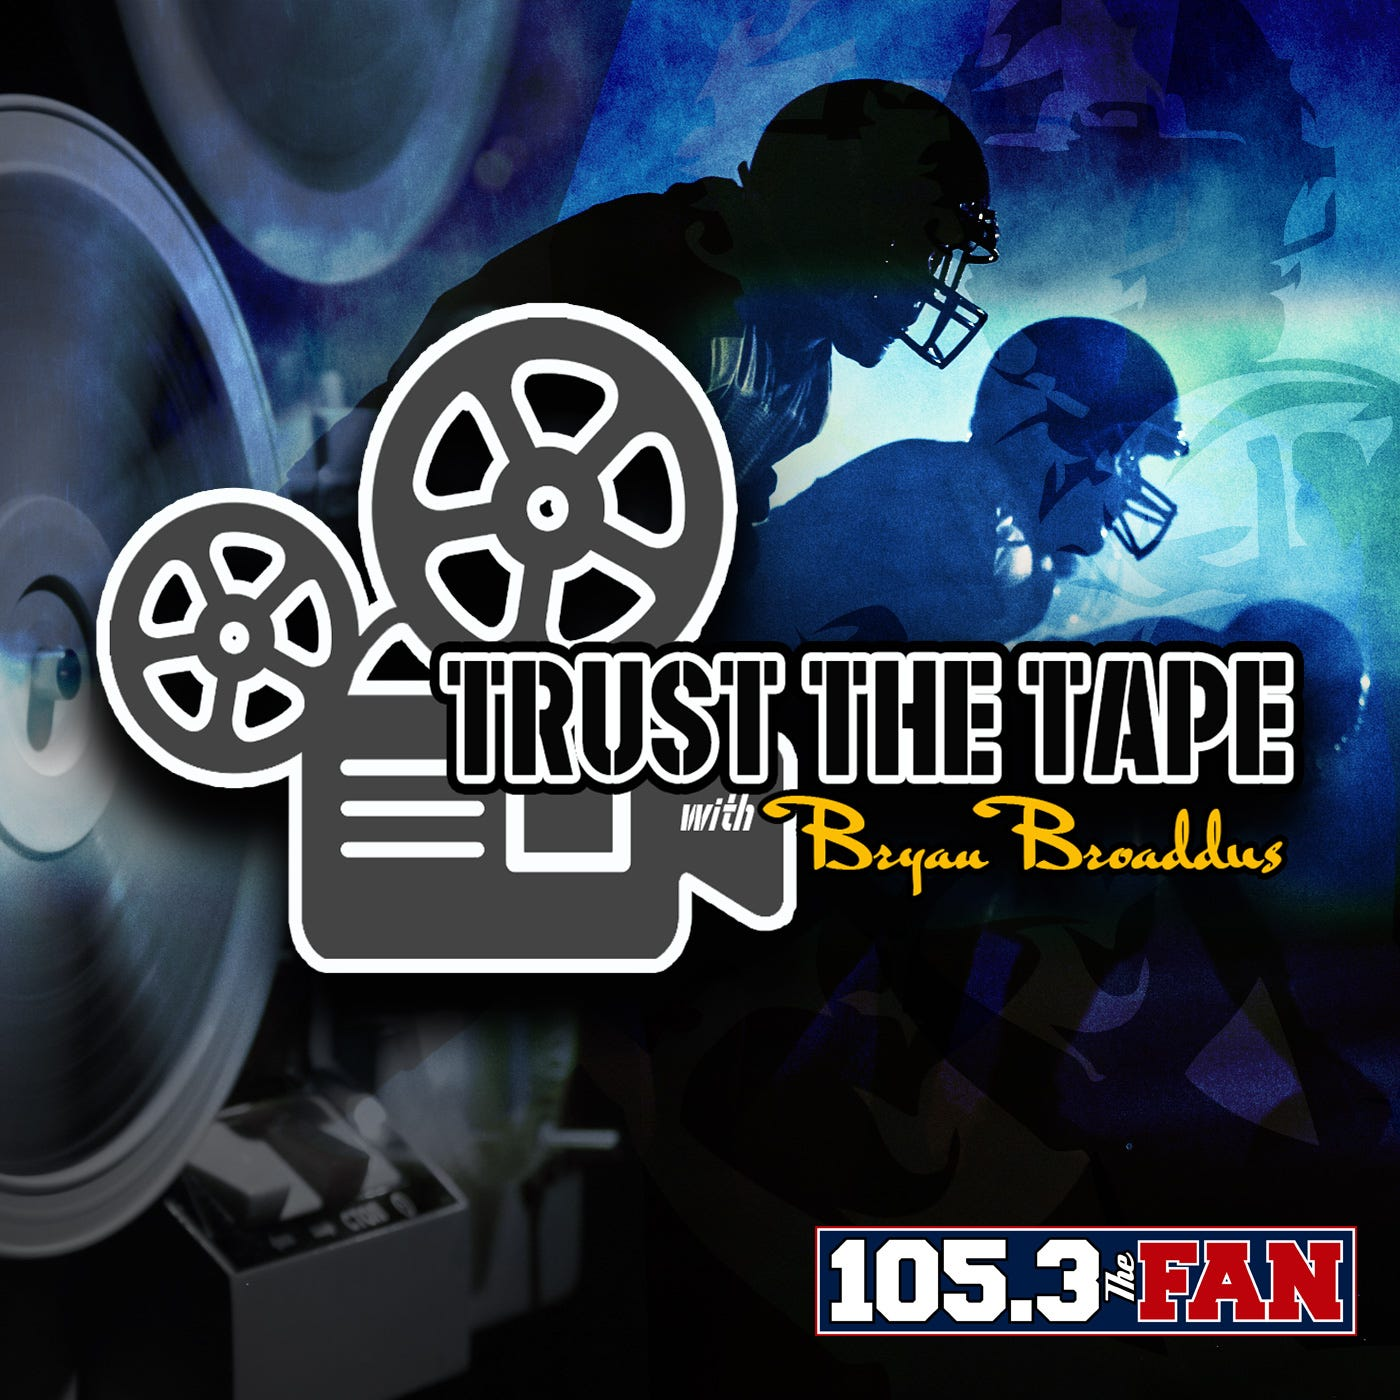 Trust The Tape with Jeff Cavanaugh and Bryan Broaddus